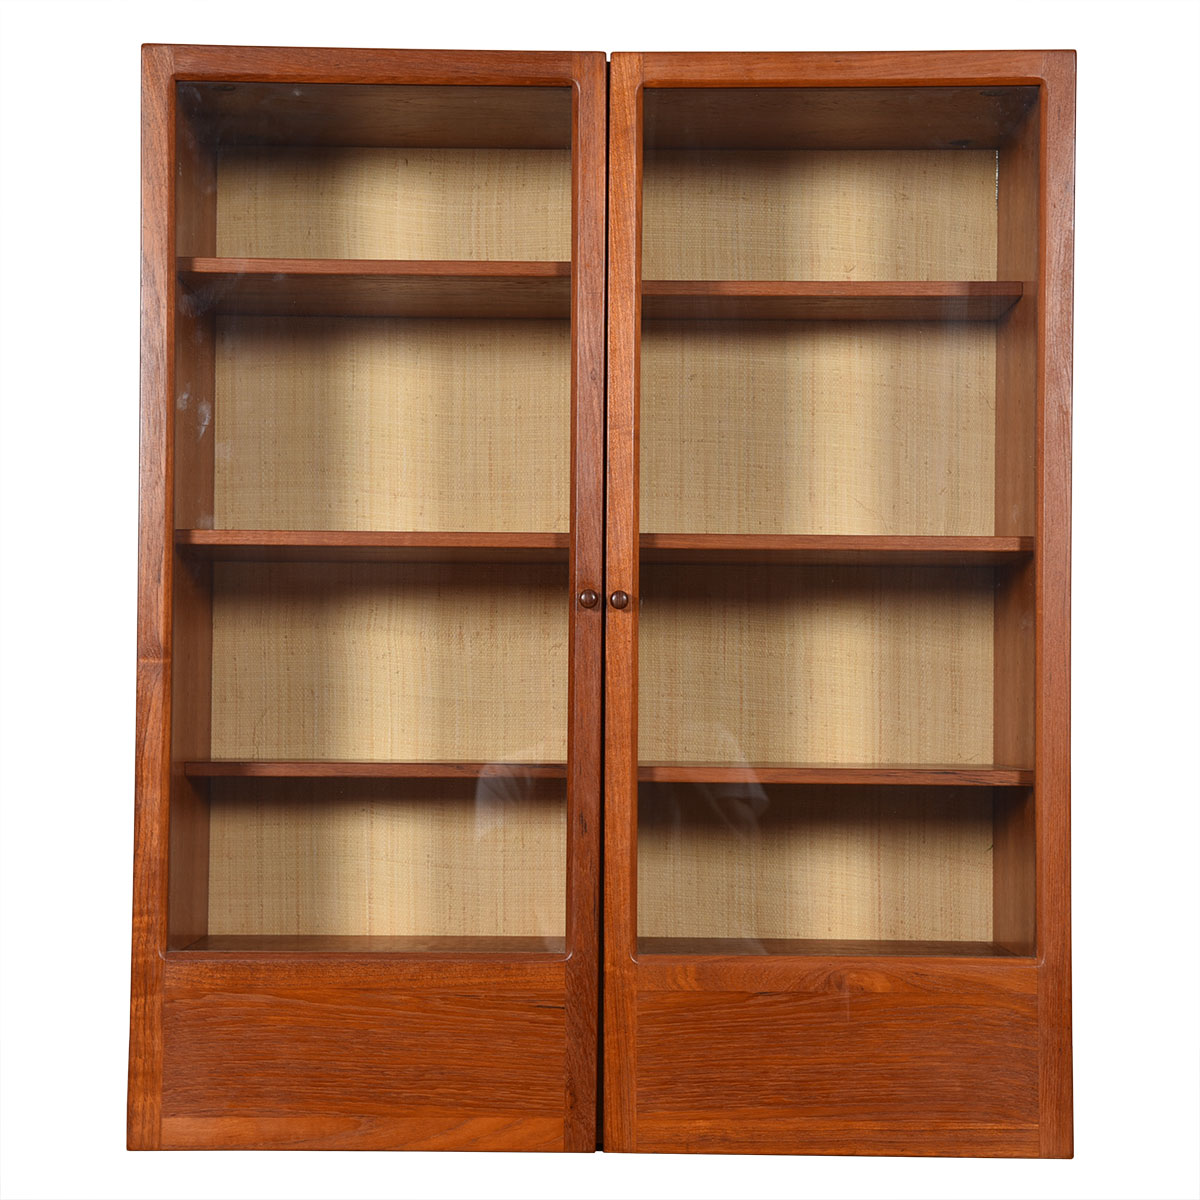 Danish Modern Teak Hanging Display Cabinet w/ Glass Doors